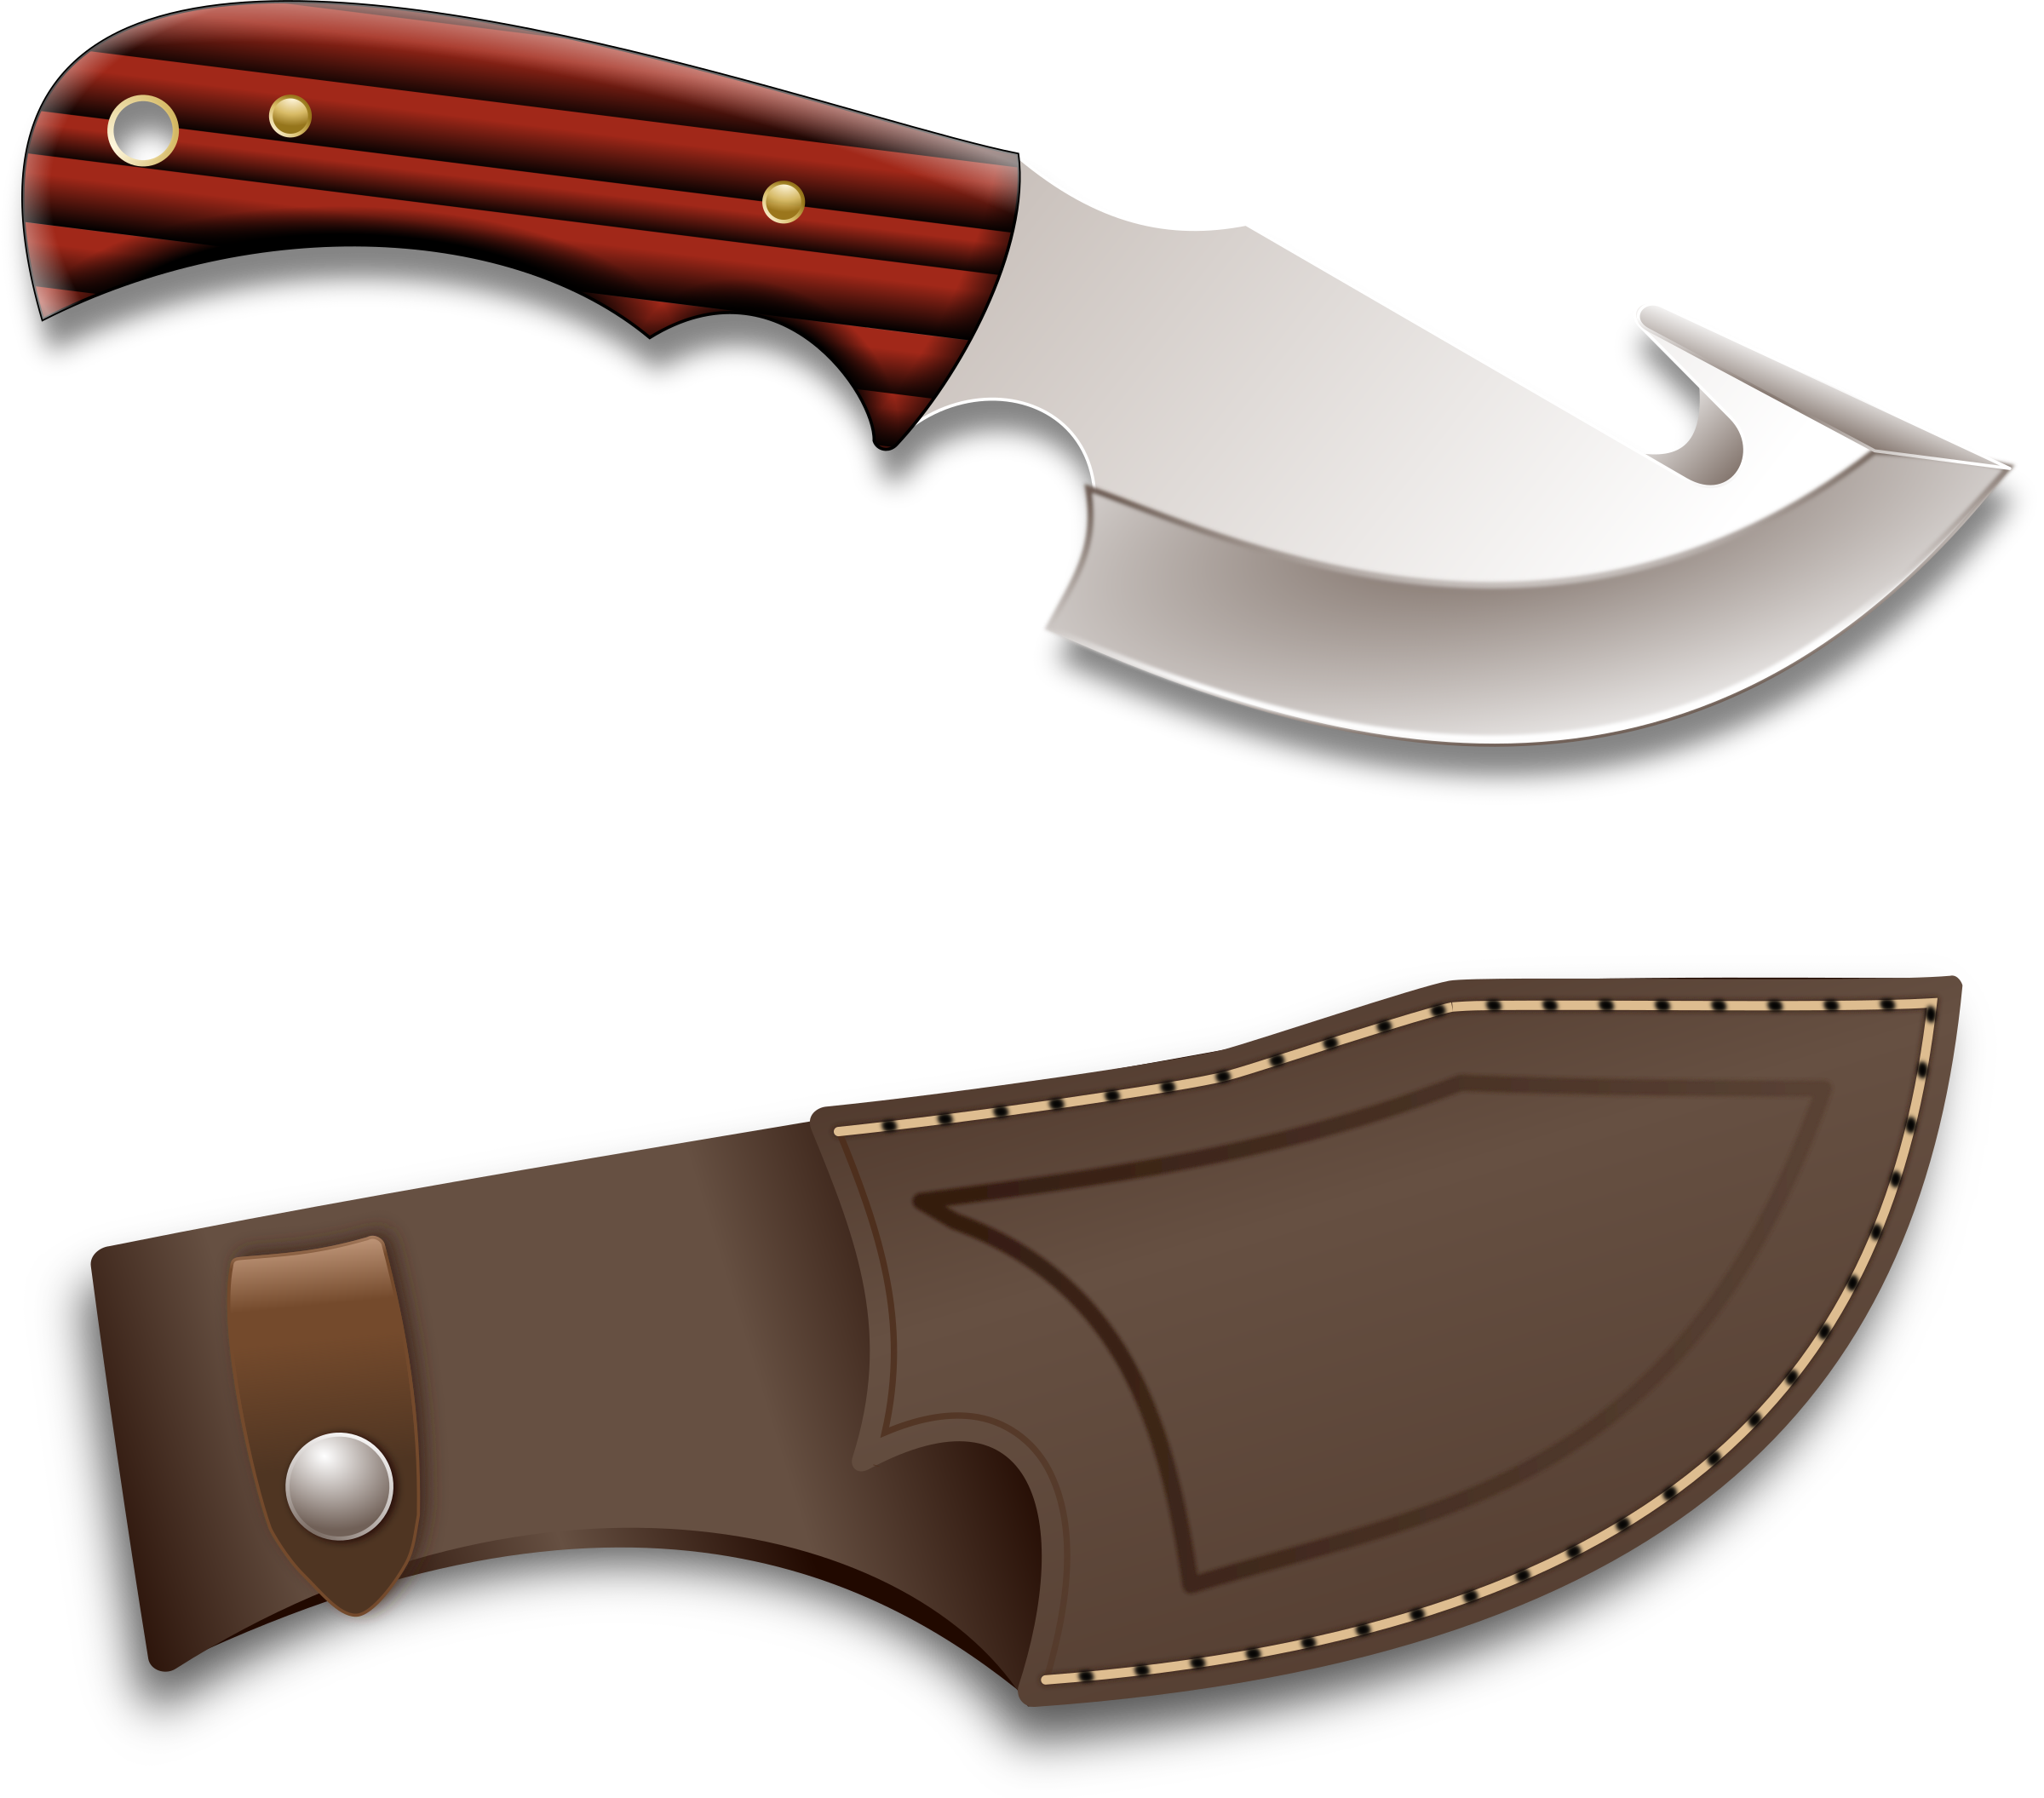 Hunter knife by remi_inconnu